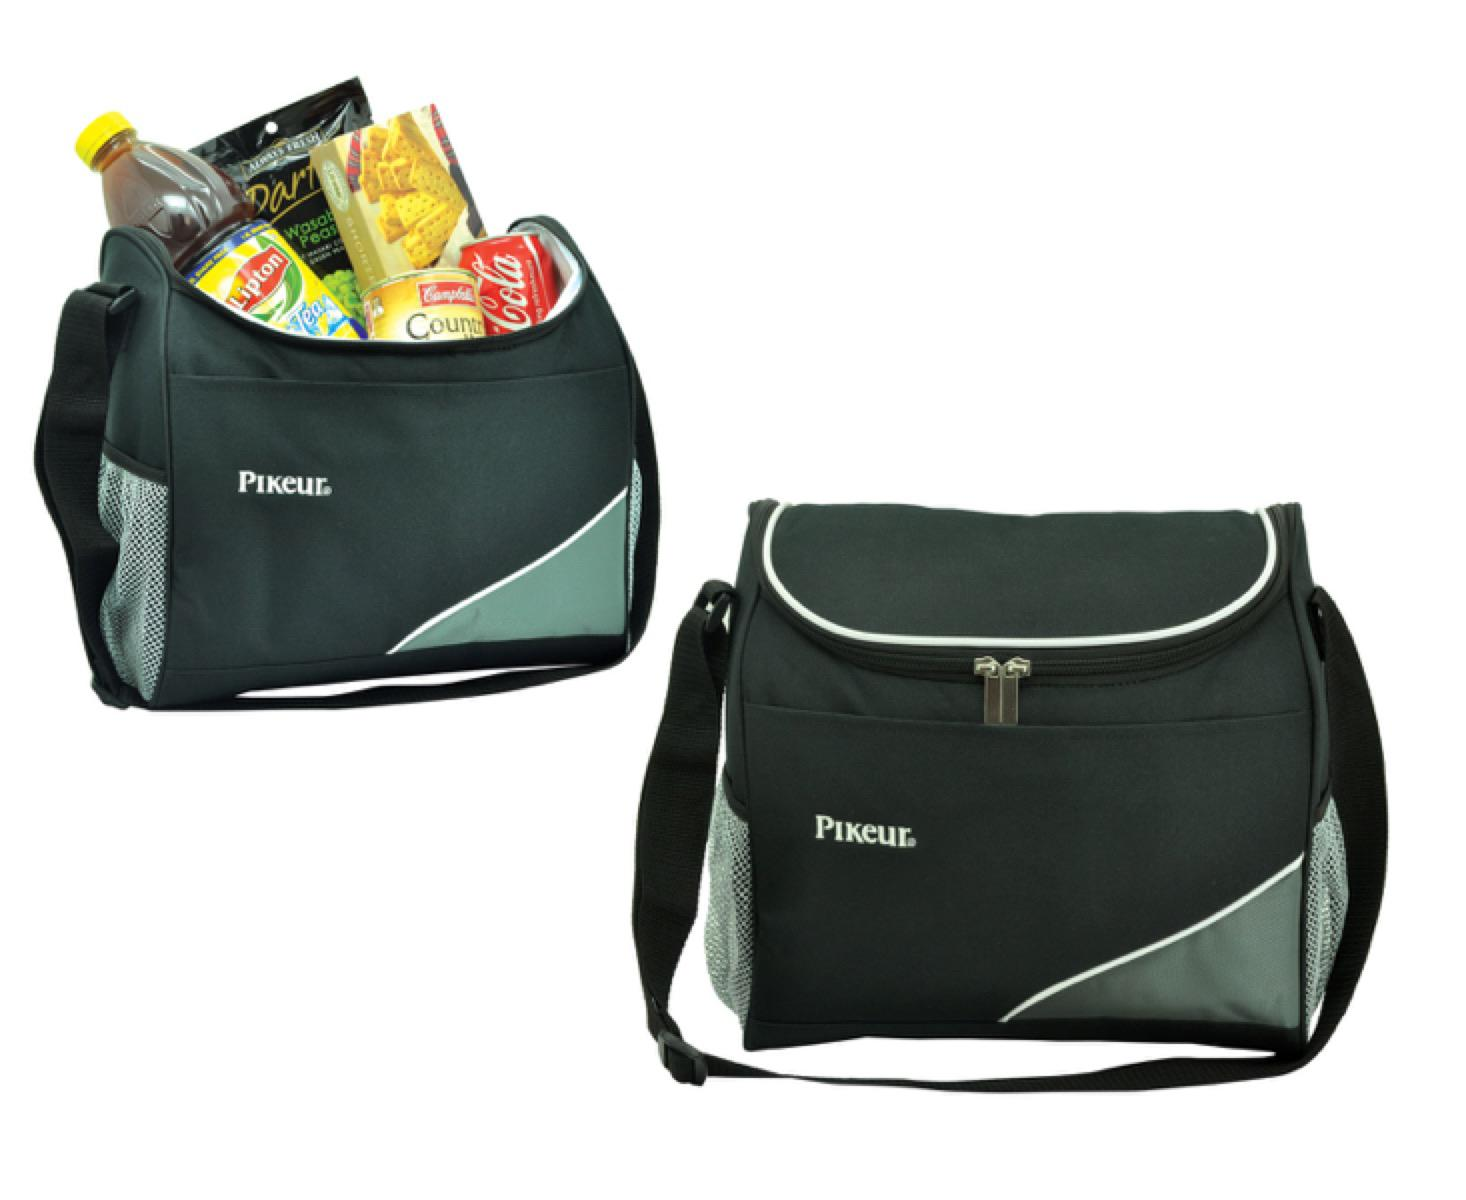 Caddy cooler bag, From 10.77